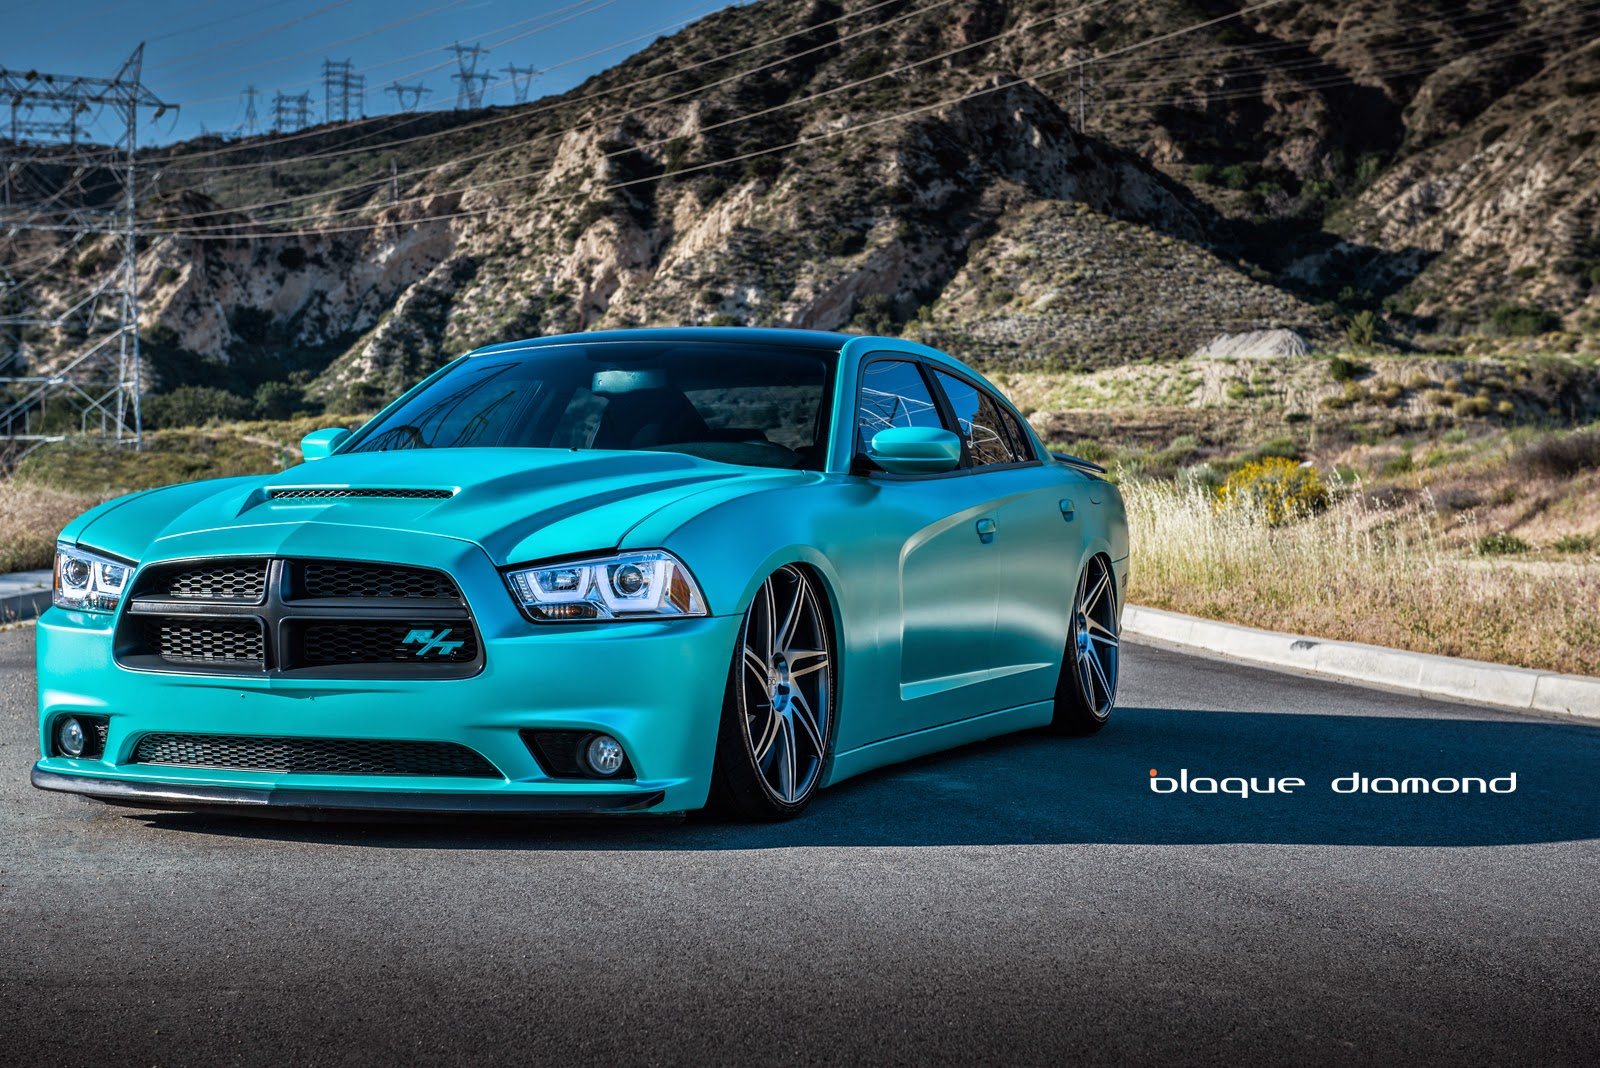 sitting low on 22 inch bd 1s - 2013 Dodge Charger Daytona